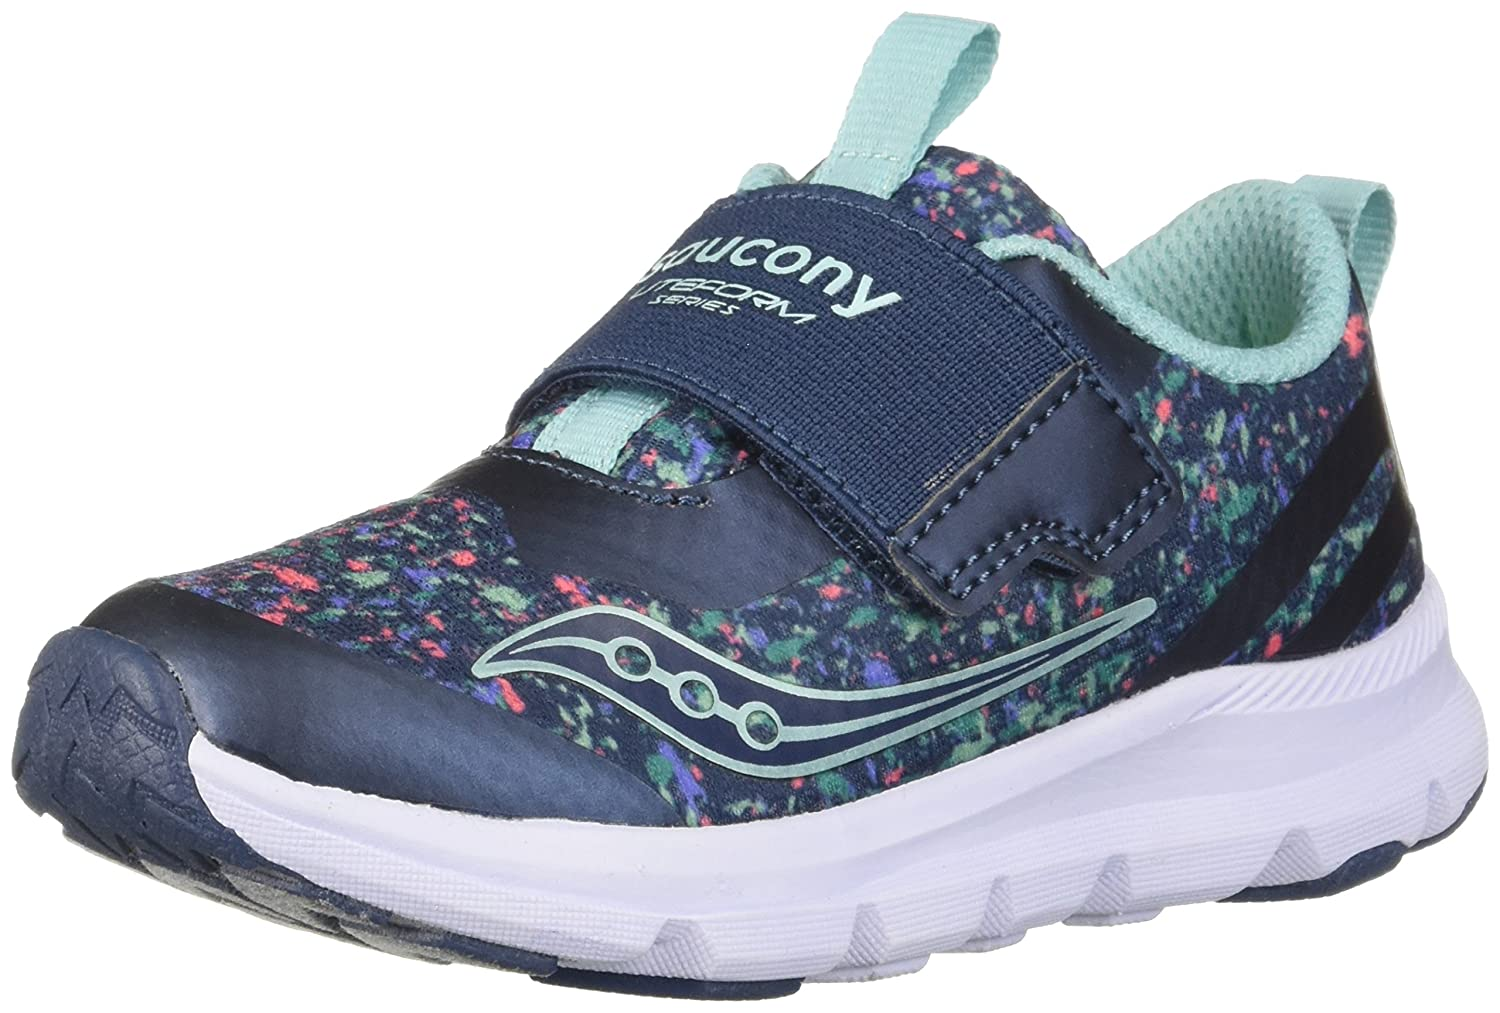 Saucony ユニセックスキッズ ボーイズ ガールズ B0785738PK 7.5 Wide US Toddler|Navy/Print Navy/Print 7.5 Wide US Toddler